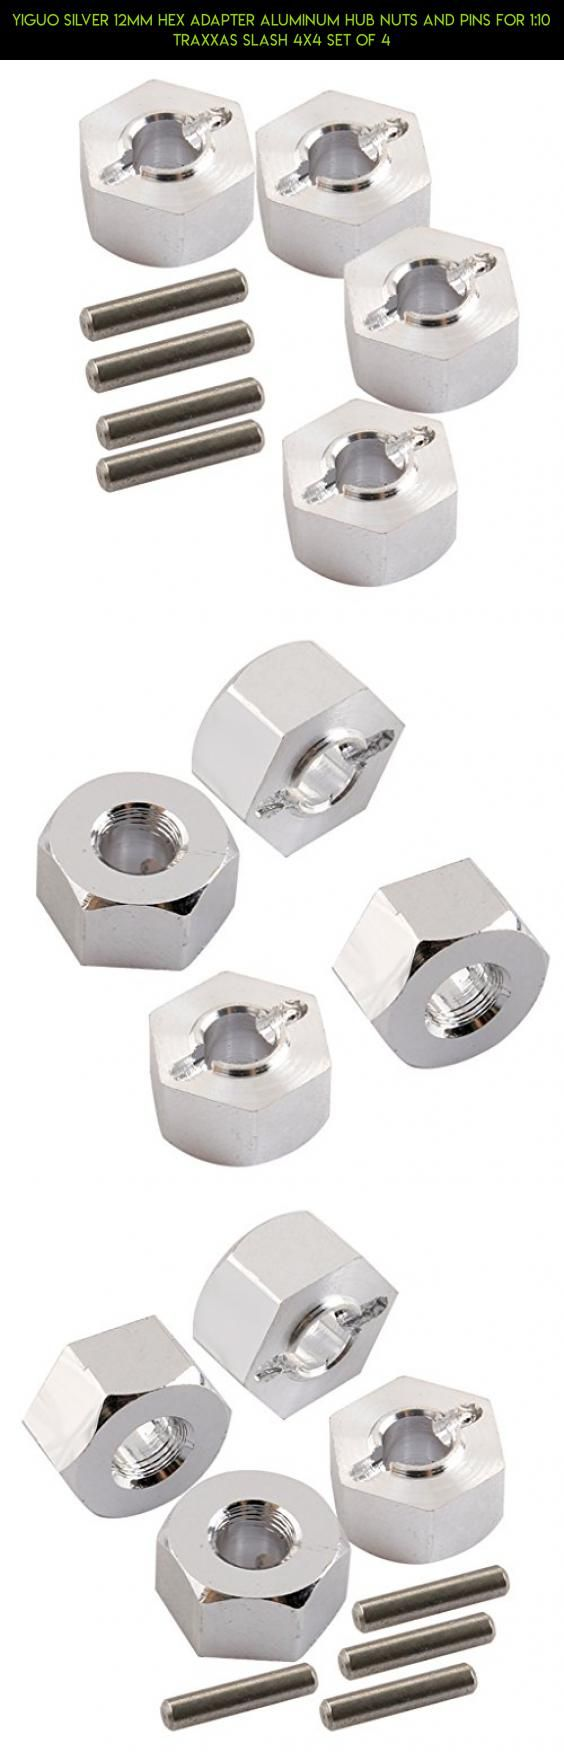 Yiguo Silver 12mm Hex Adapter Aluminum Hub Nuts and Pins for 1:10 Traxxas Slash 4X4 Set of 4 #gadgets #shopping #tech #racing #4x4 #fpv #parts #plans #products #technology #wltoys #kit #drone #camera